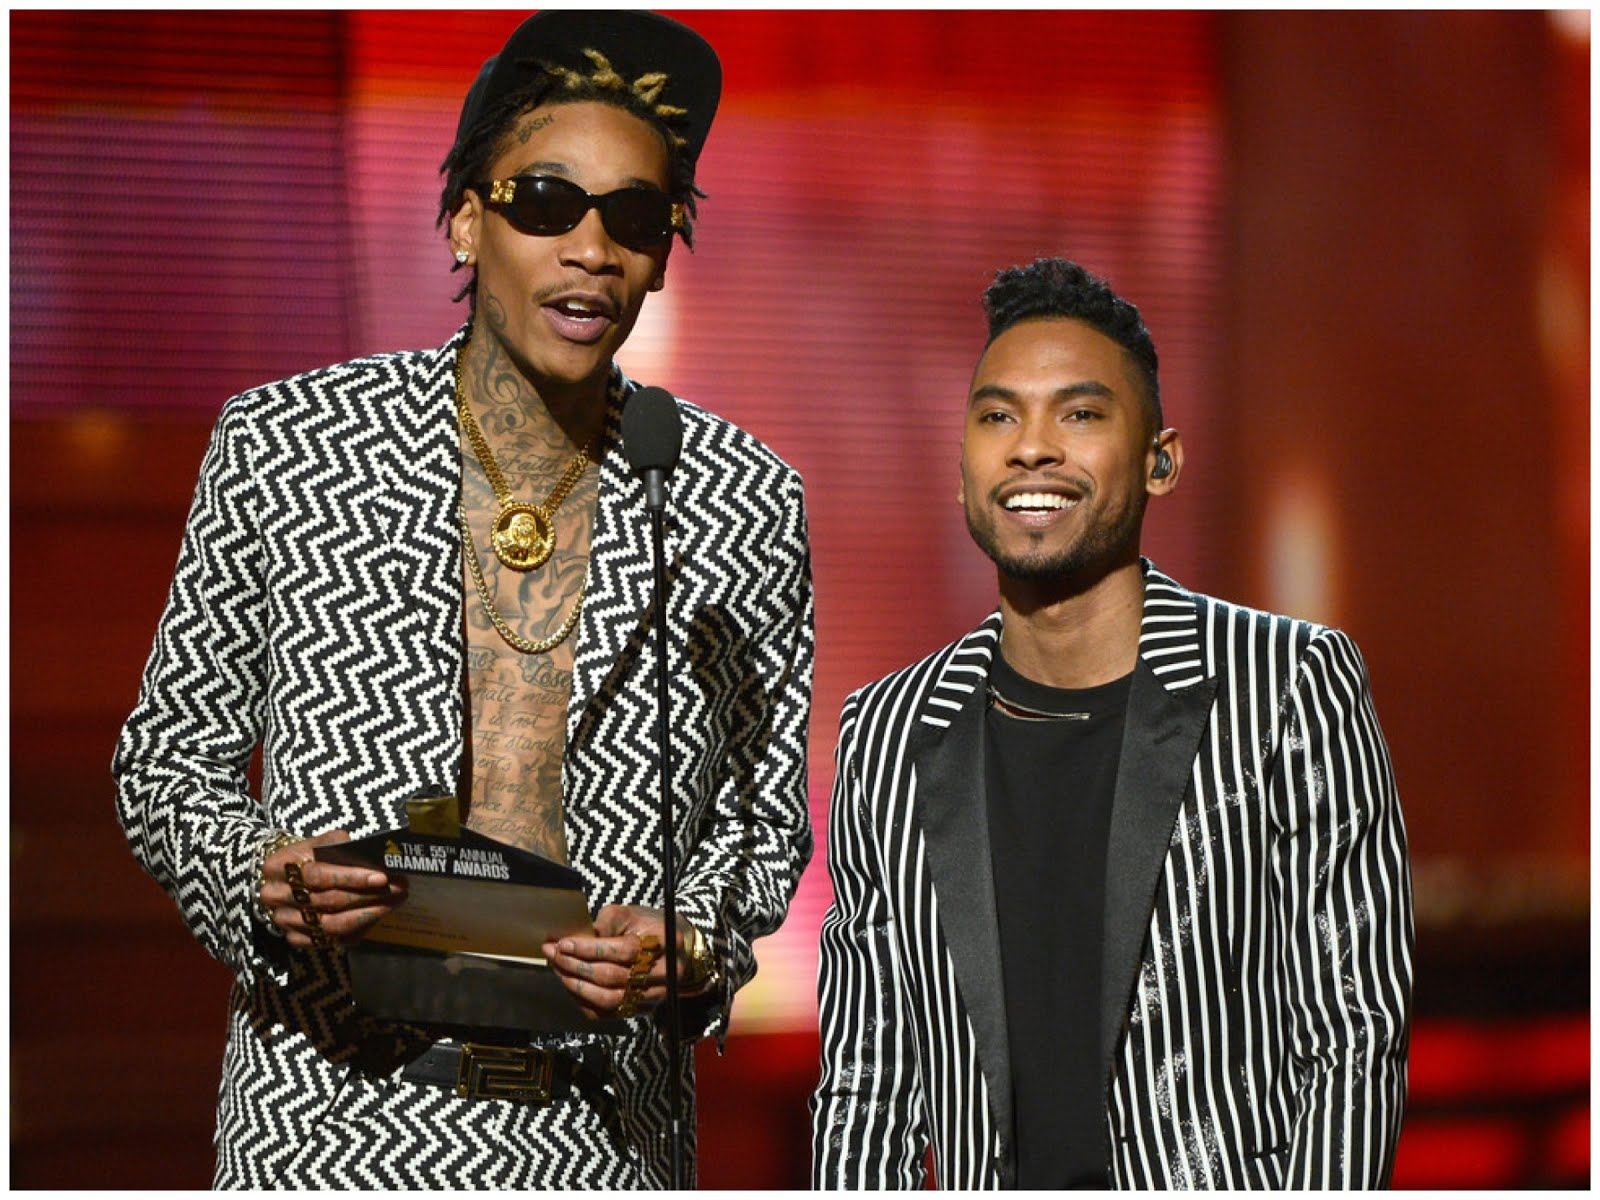 00O00 Menswear Blog Miguel in Saint Laurent - 55th Annual GRAMMY Awards at Staples Center on February 10, 2013 in Los Angeles, California